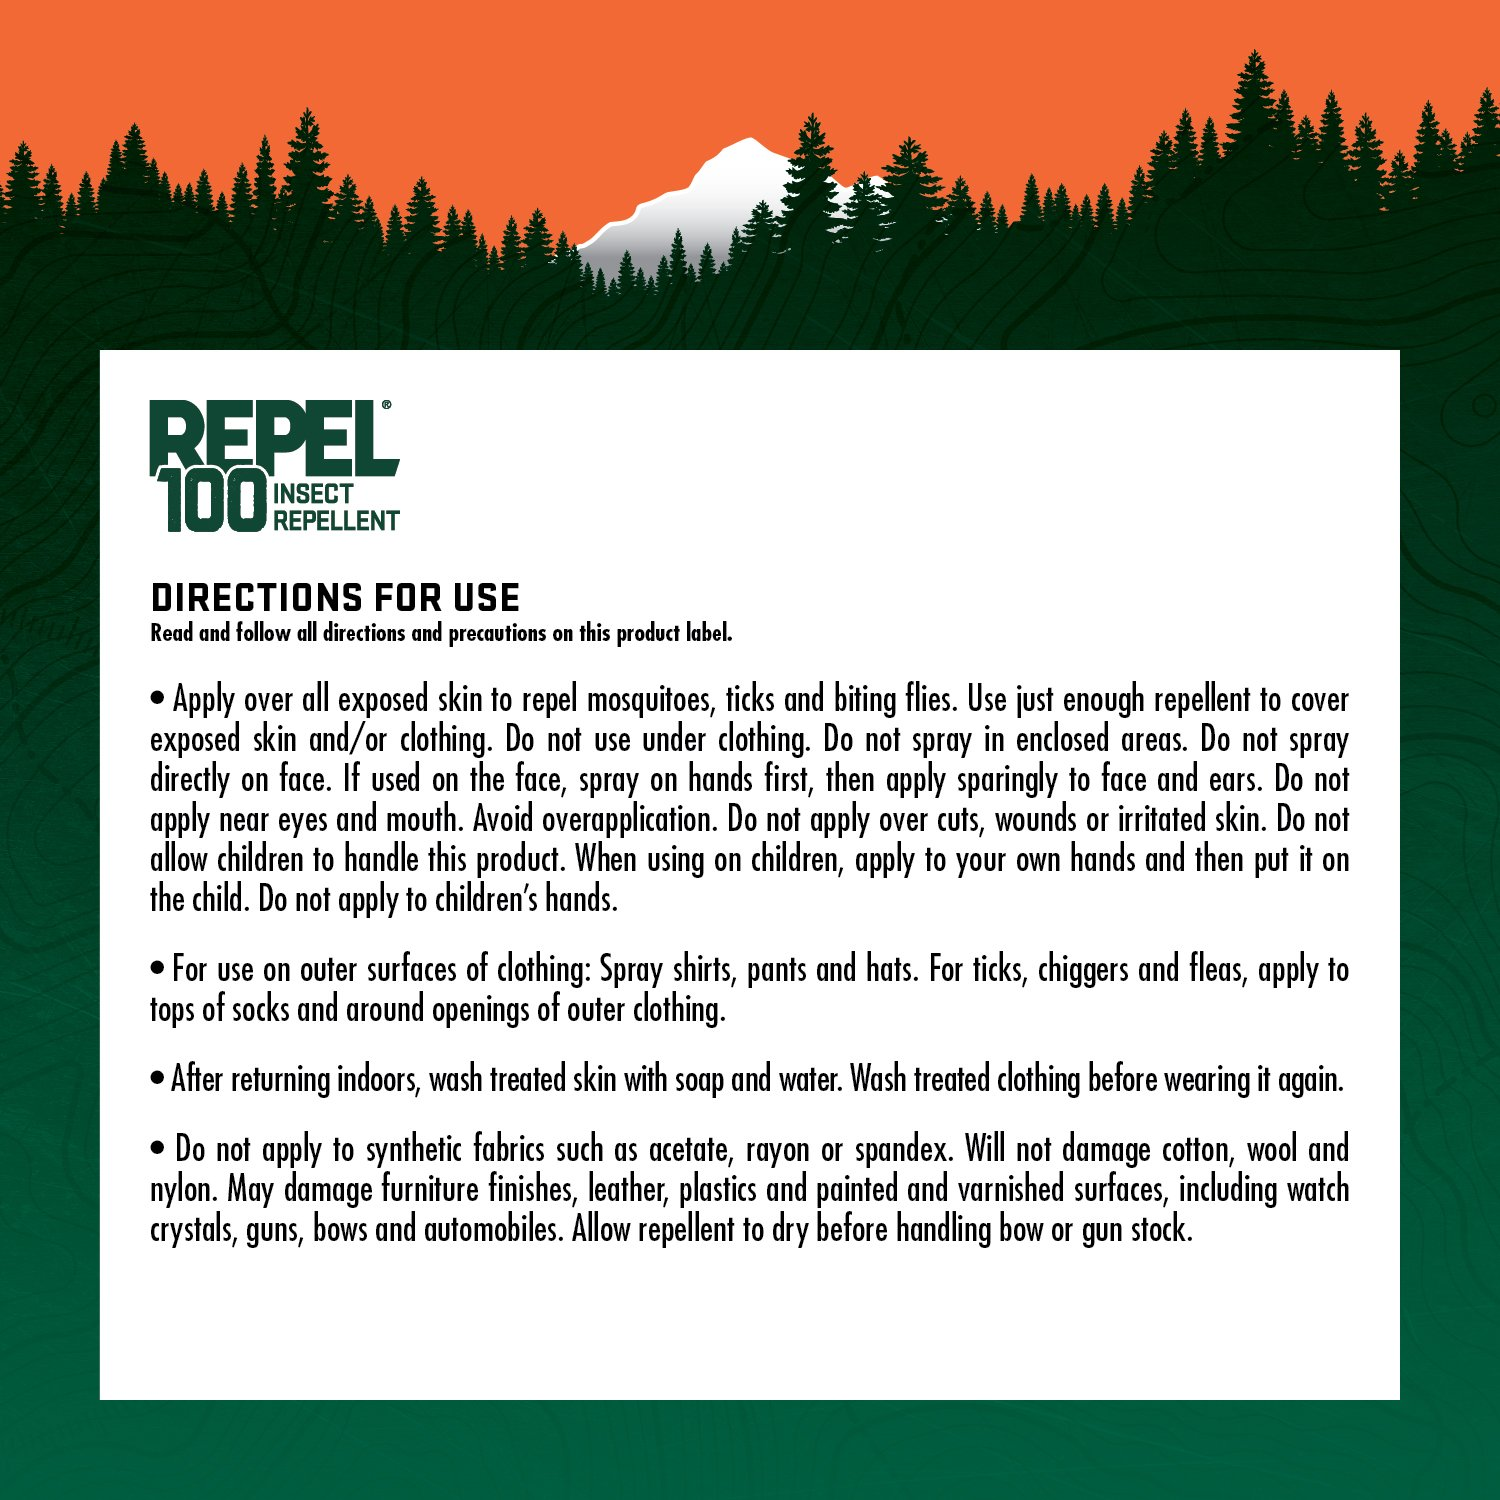 Repel 100 Insect Repellent, Pen-Size Pump Spray,0.475-Ounce by Repel (Image #4)